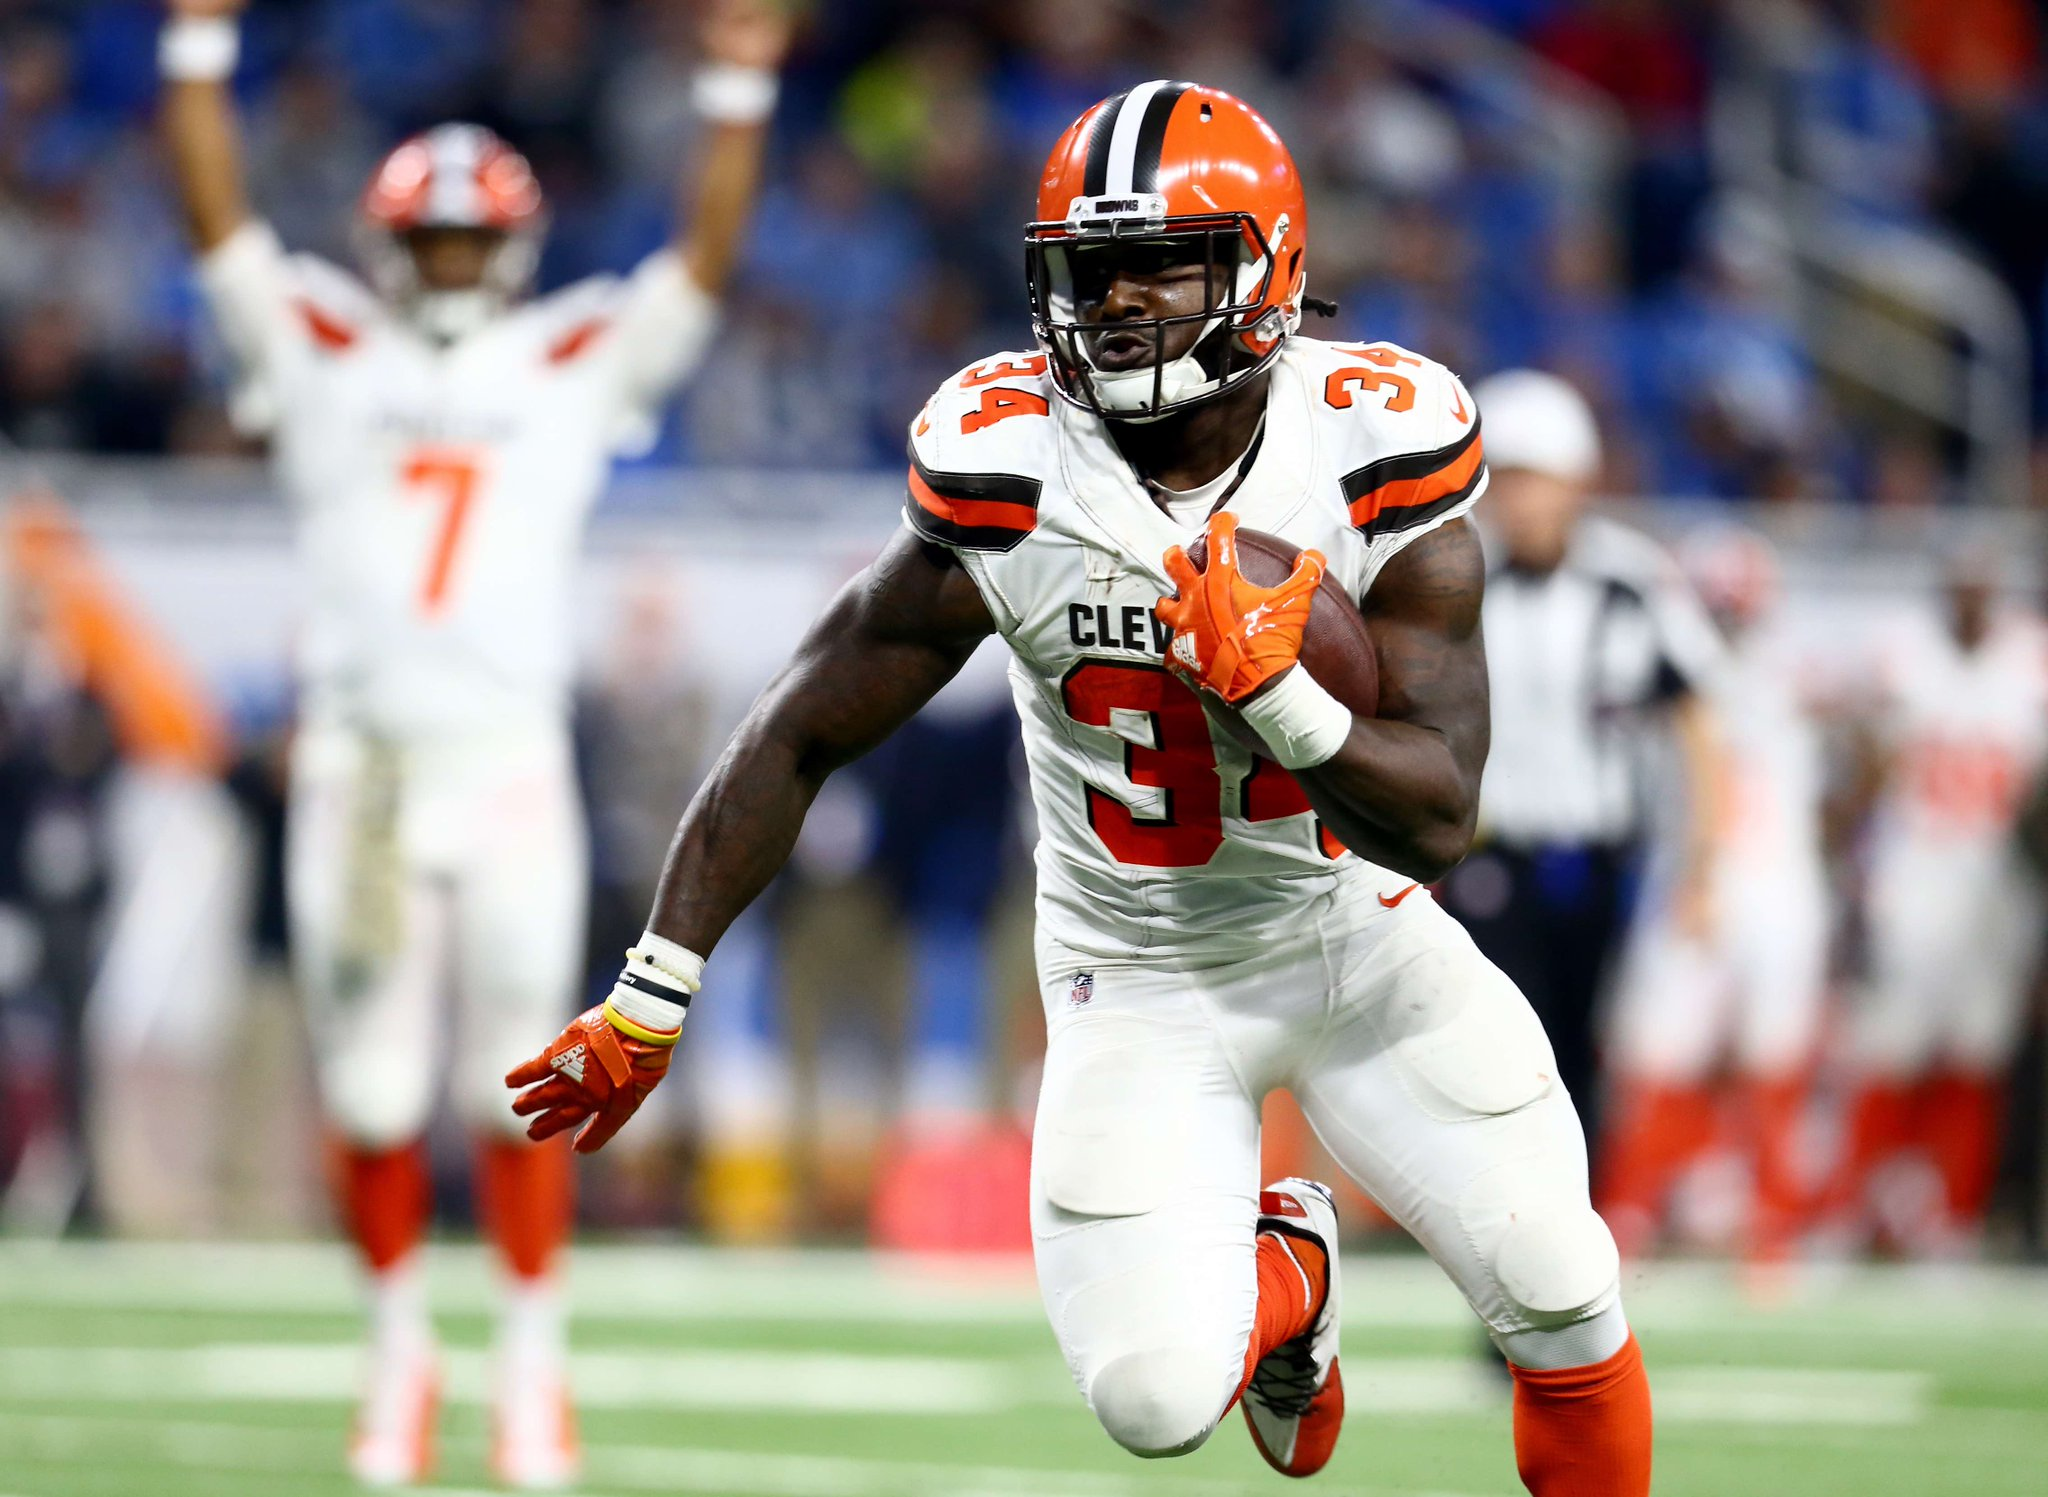 Isaiah Crowell intends to sign three-year deal with Jets, per @AdamSchefter https://t.co/soRlPokgUC